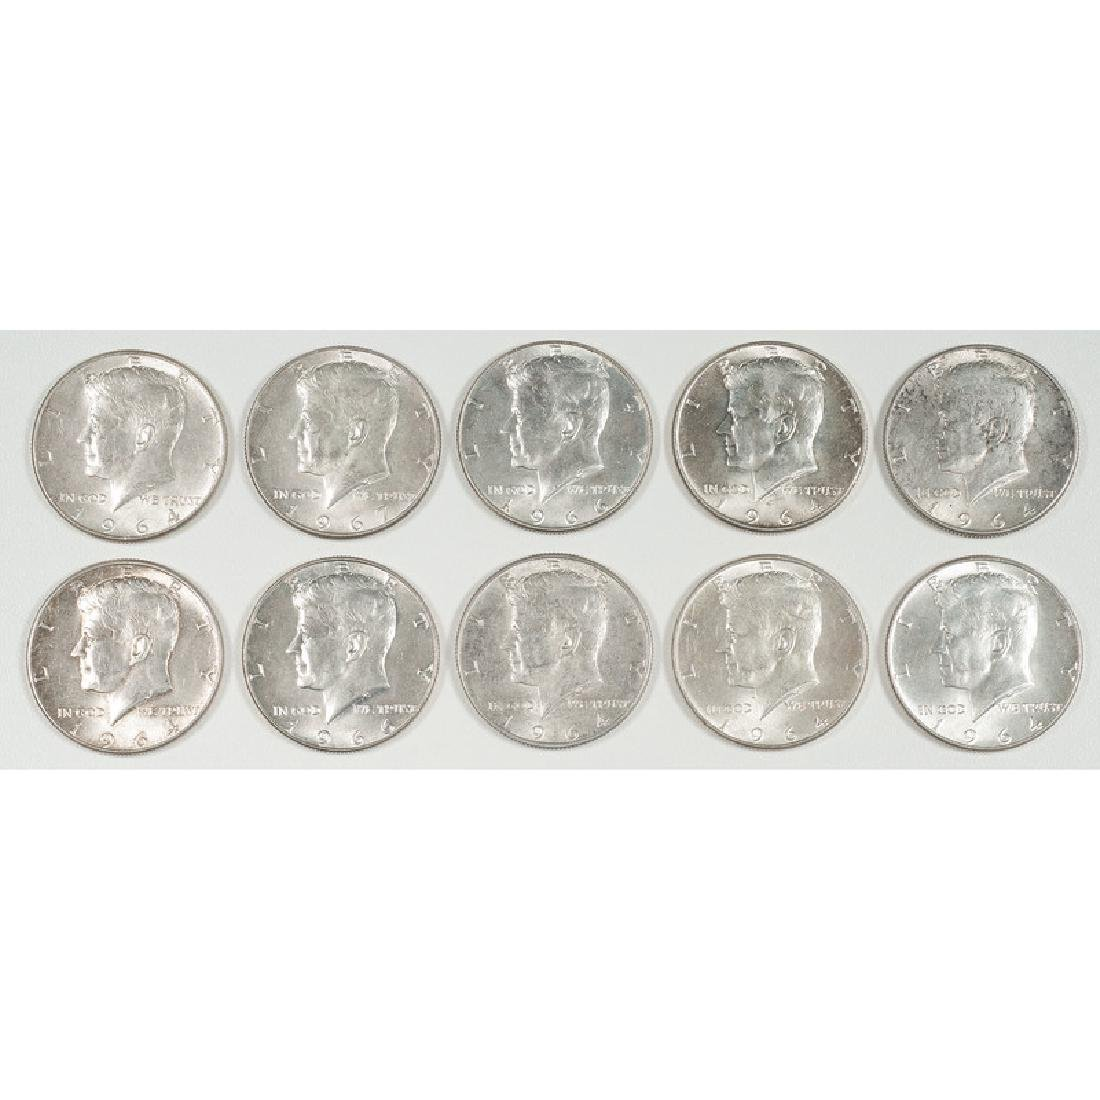 United States Kennedy Half Dollars 1964-1967